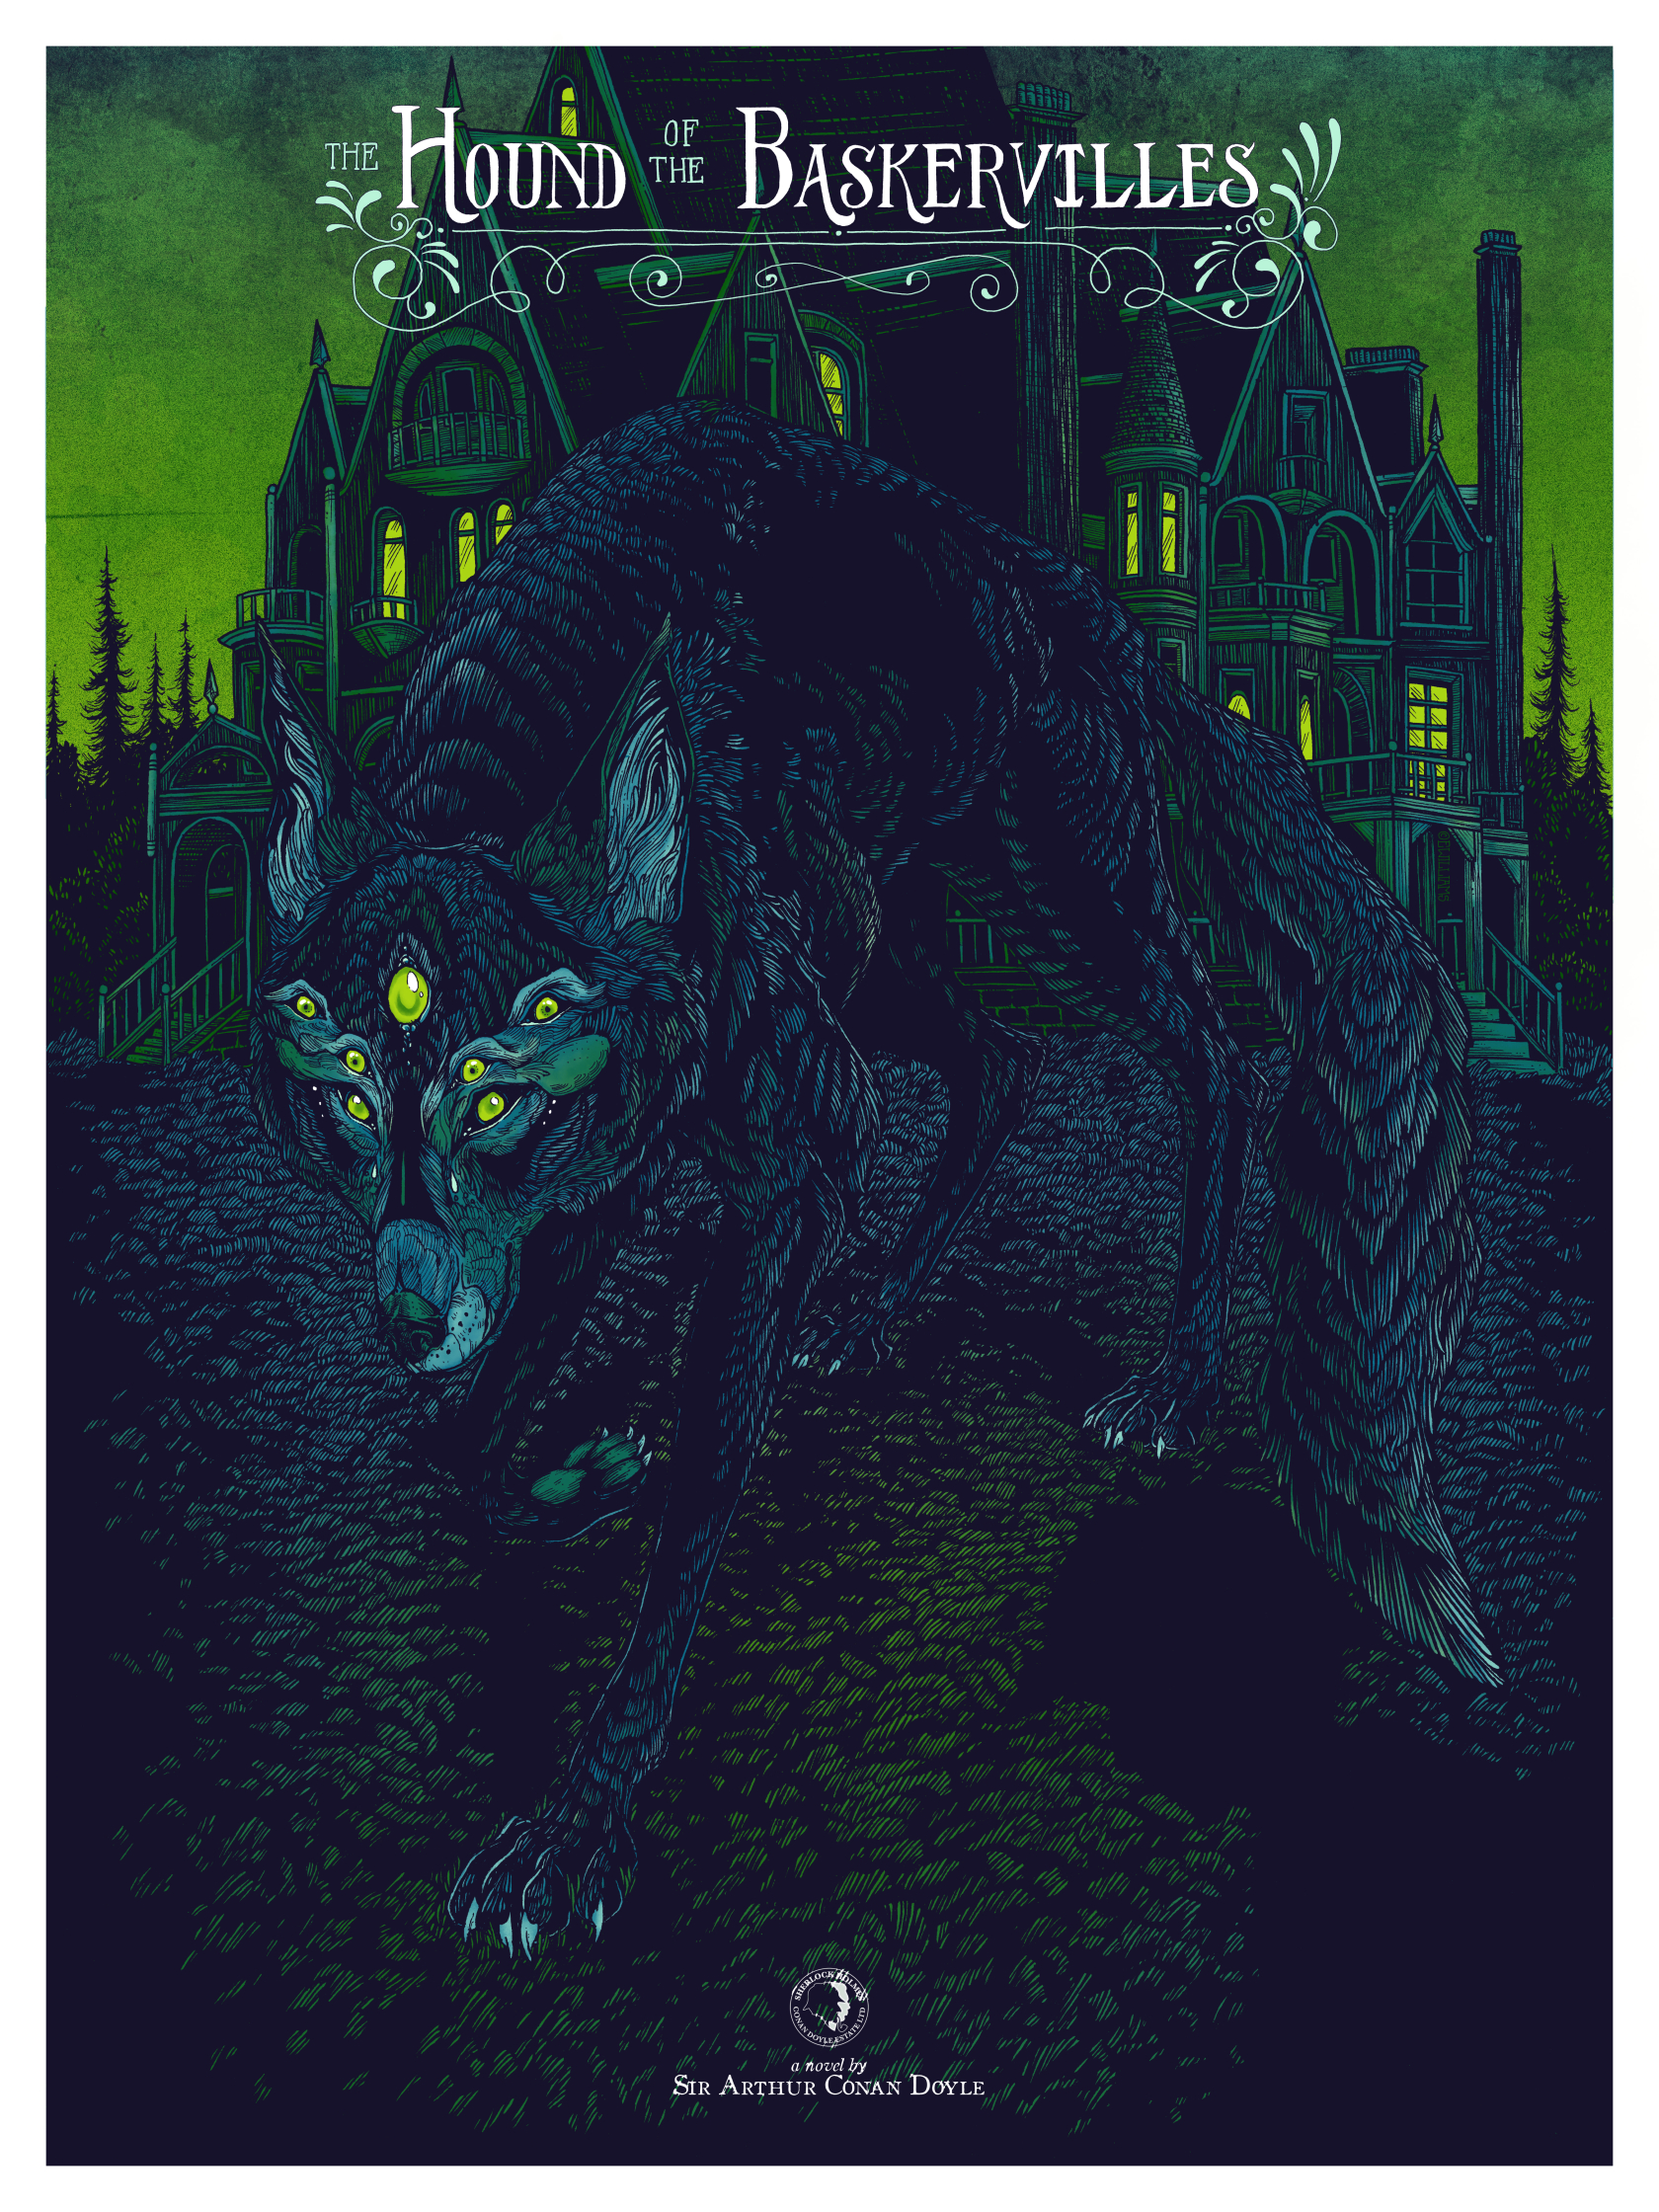 Black Dragon Press - Arthur Conan Doyle- Hound Of Baskervilles - Screen Printed Poster - Erica Williams- Variant.jpg